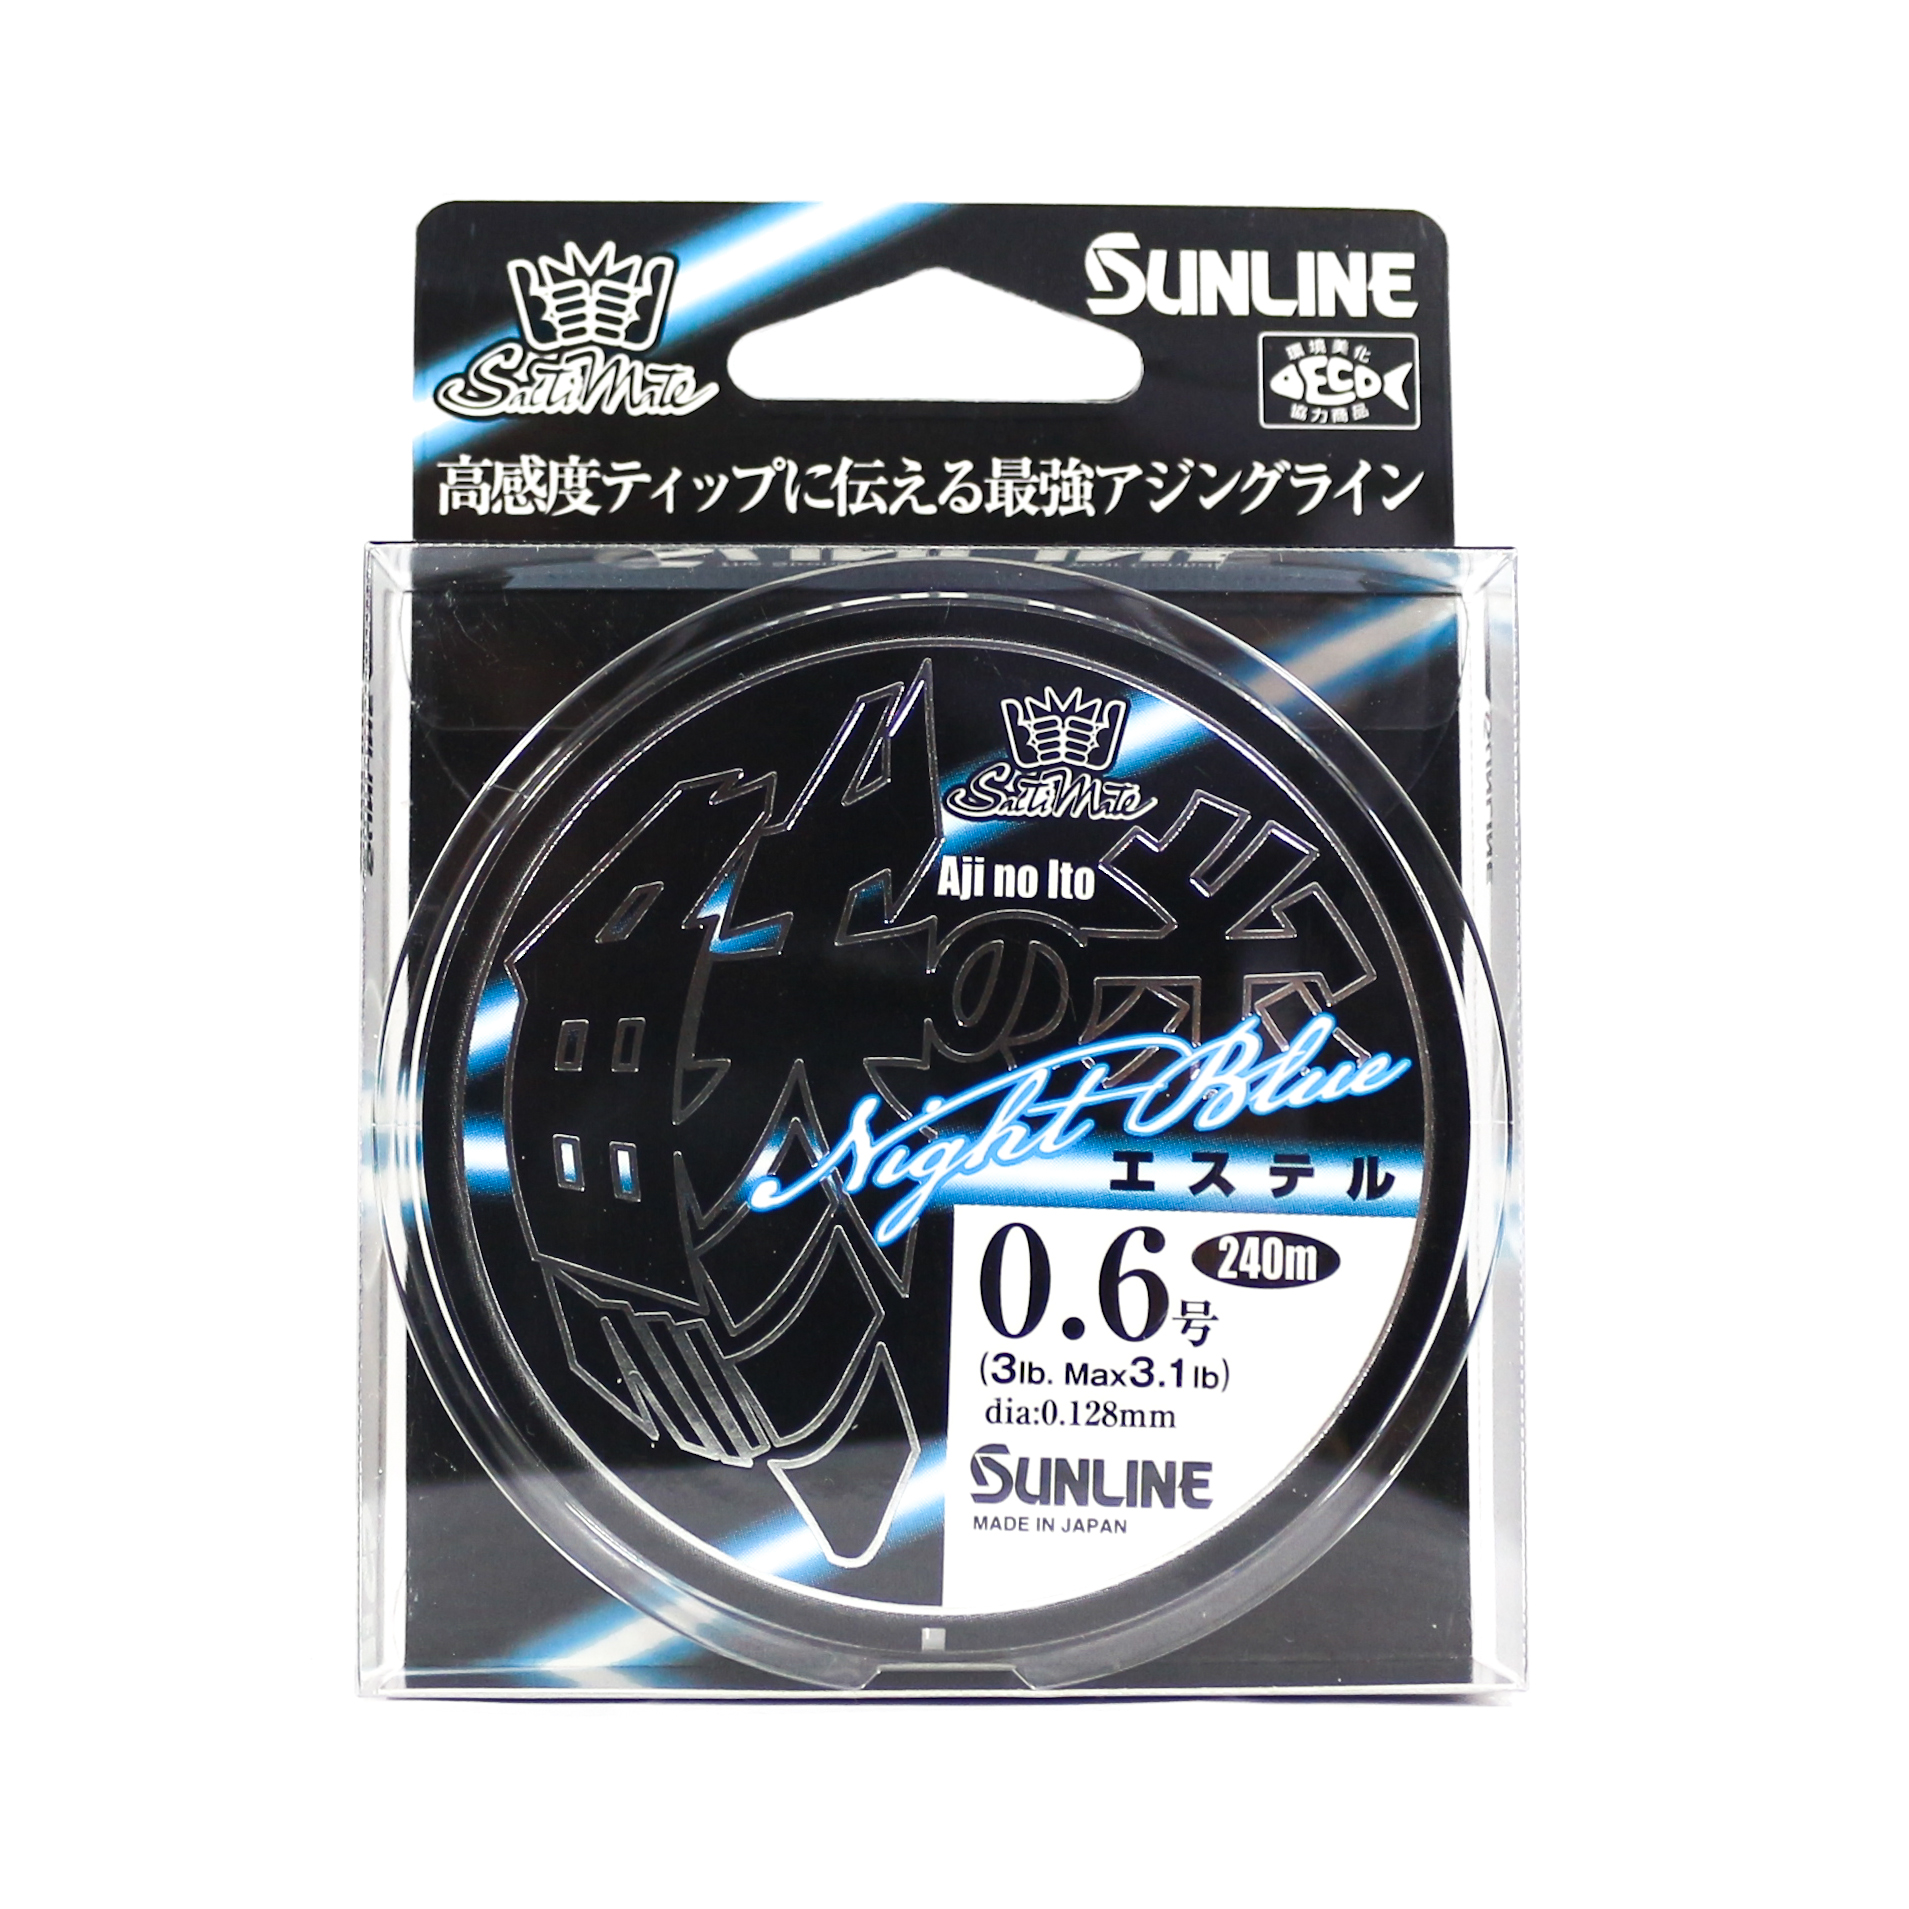 Sunline Ester Line Aji No Ito 240M 3 LB Night Blue (8416)